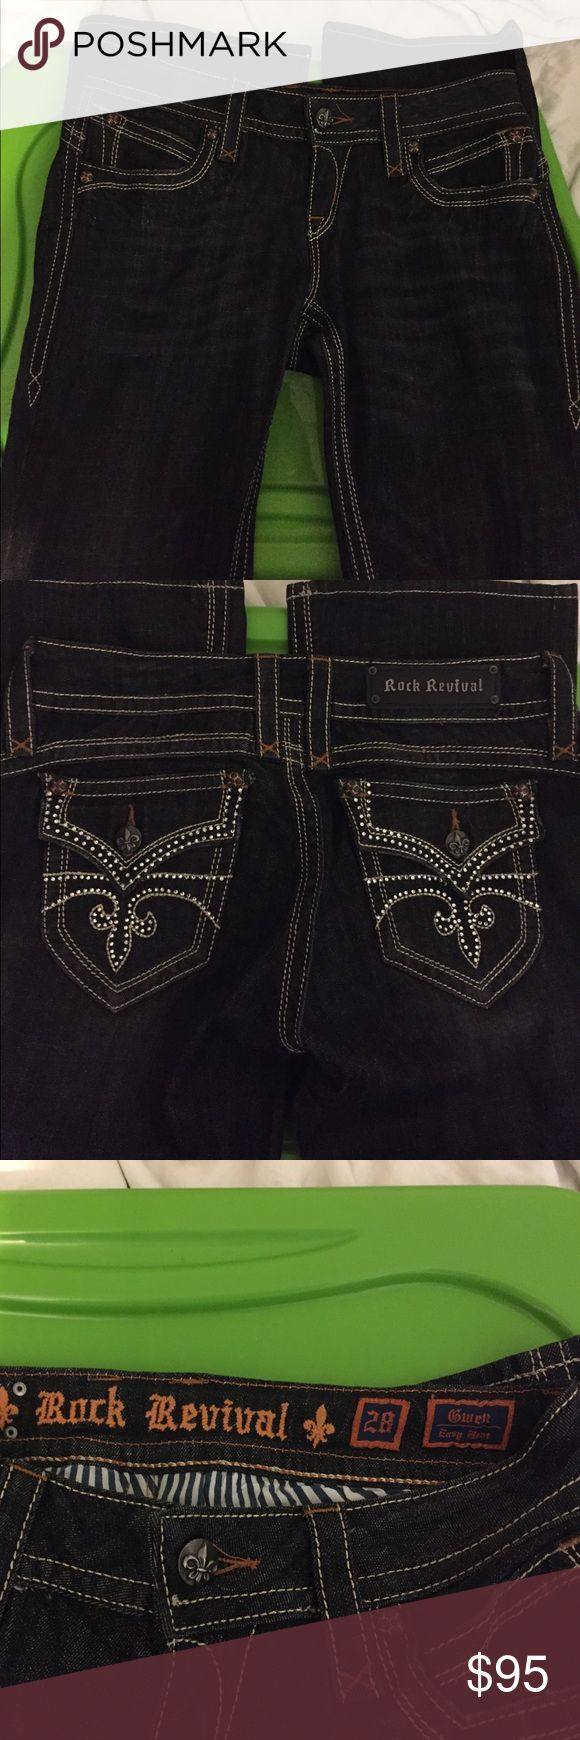 Rock Revival Jeans Brand new w/o tags these are so stiff they have to be new beautiful they were sized wrong as an 18 they are a 28 Gewn Easy Boot Rock Revival Jeans Boot Cut